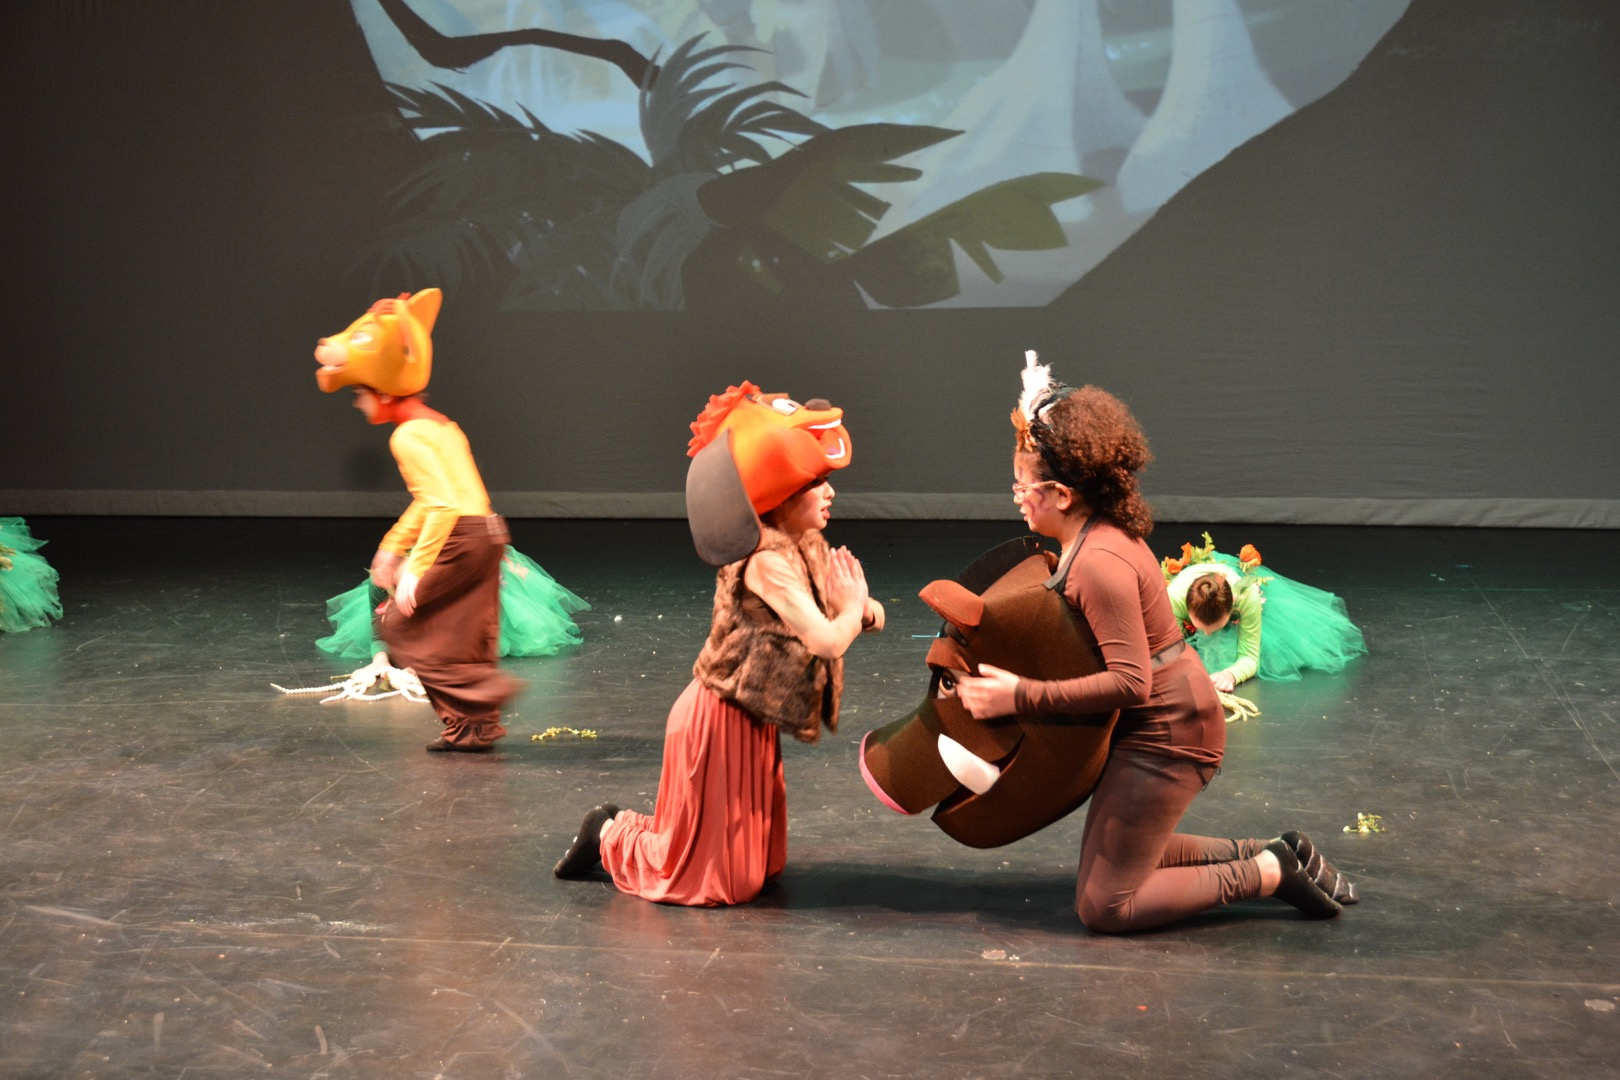 The children dressed as animals dancing